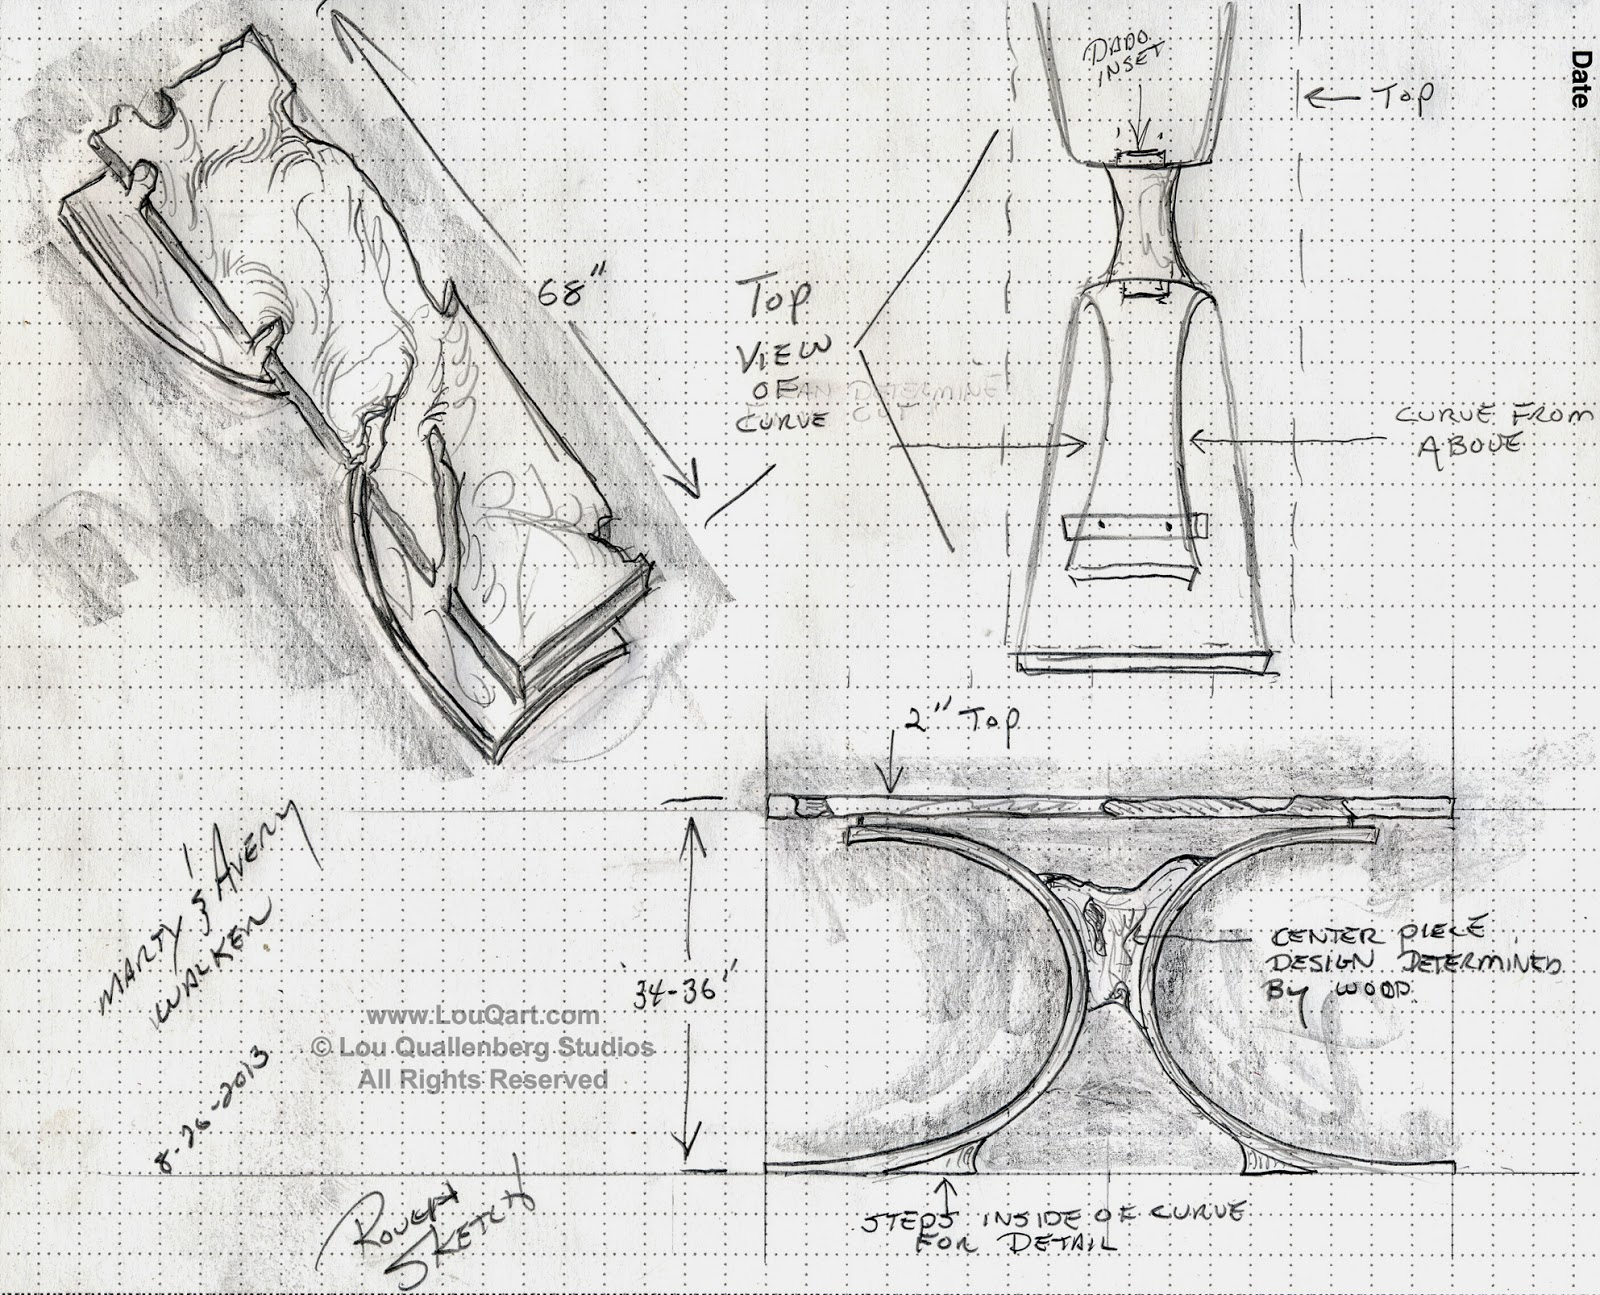 Sketch for Mesquite Entry Table by Lou Quallenberg Studios